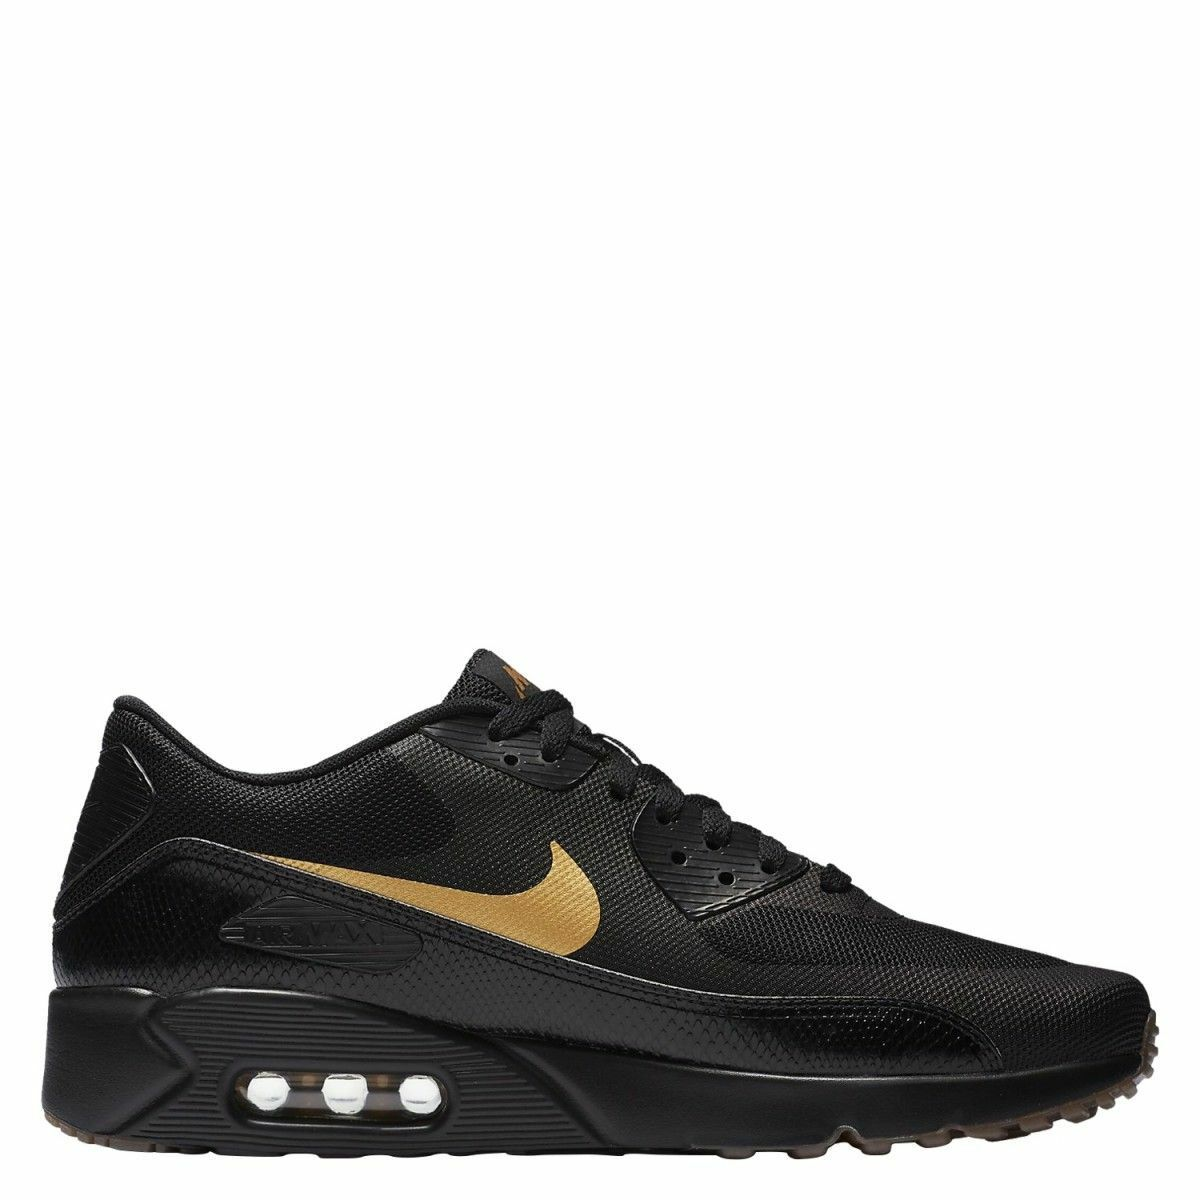 NIKE AIR MAX 90 ULTRA 2.0 ESSENTIAL 875695-016 BLACK METALLIC gold Mens Sz 10